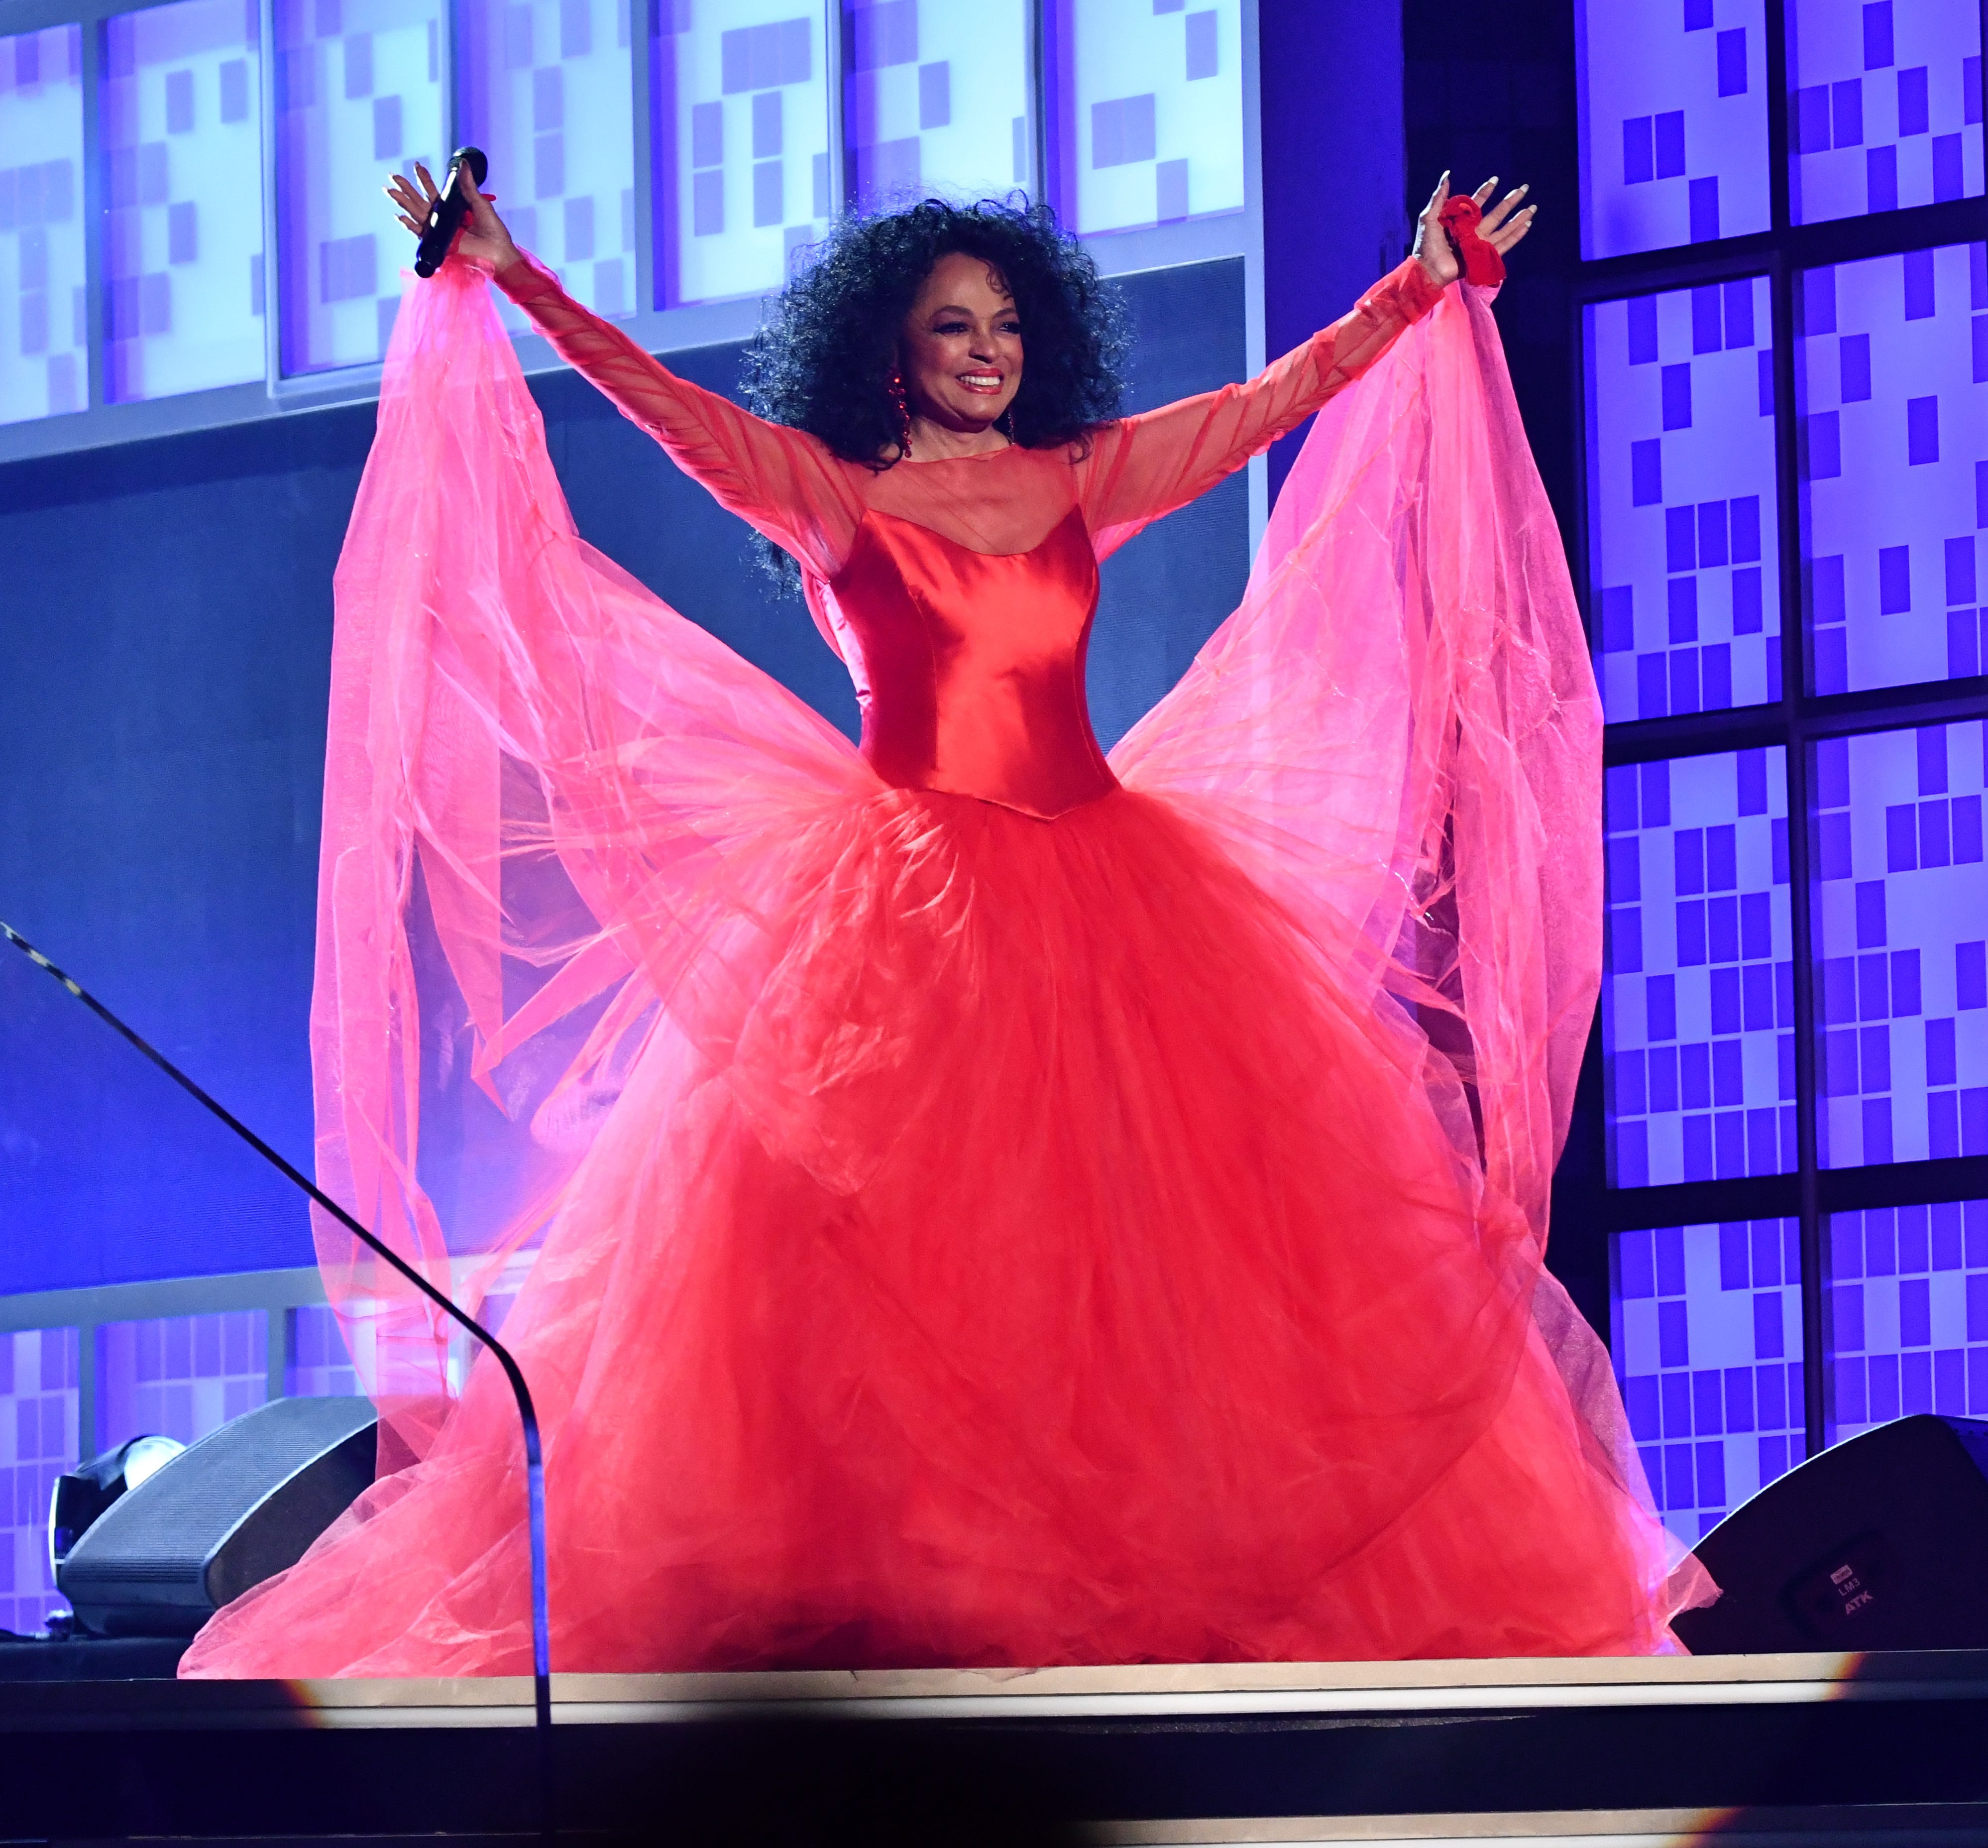 Diana Ross appears during a tribute segment at the Grammy Awards on Feb. 10, 2019, in Los Angeles.